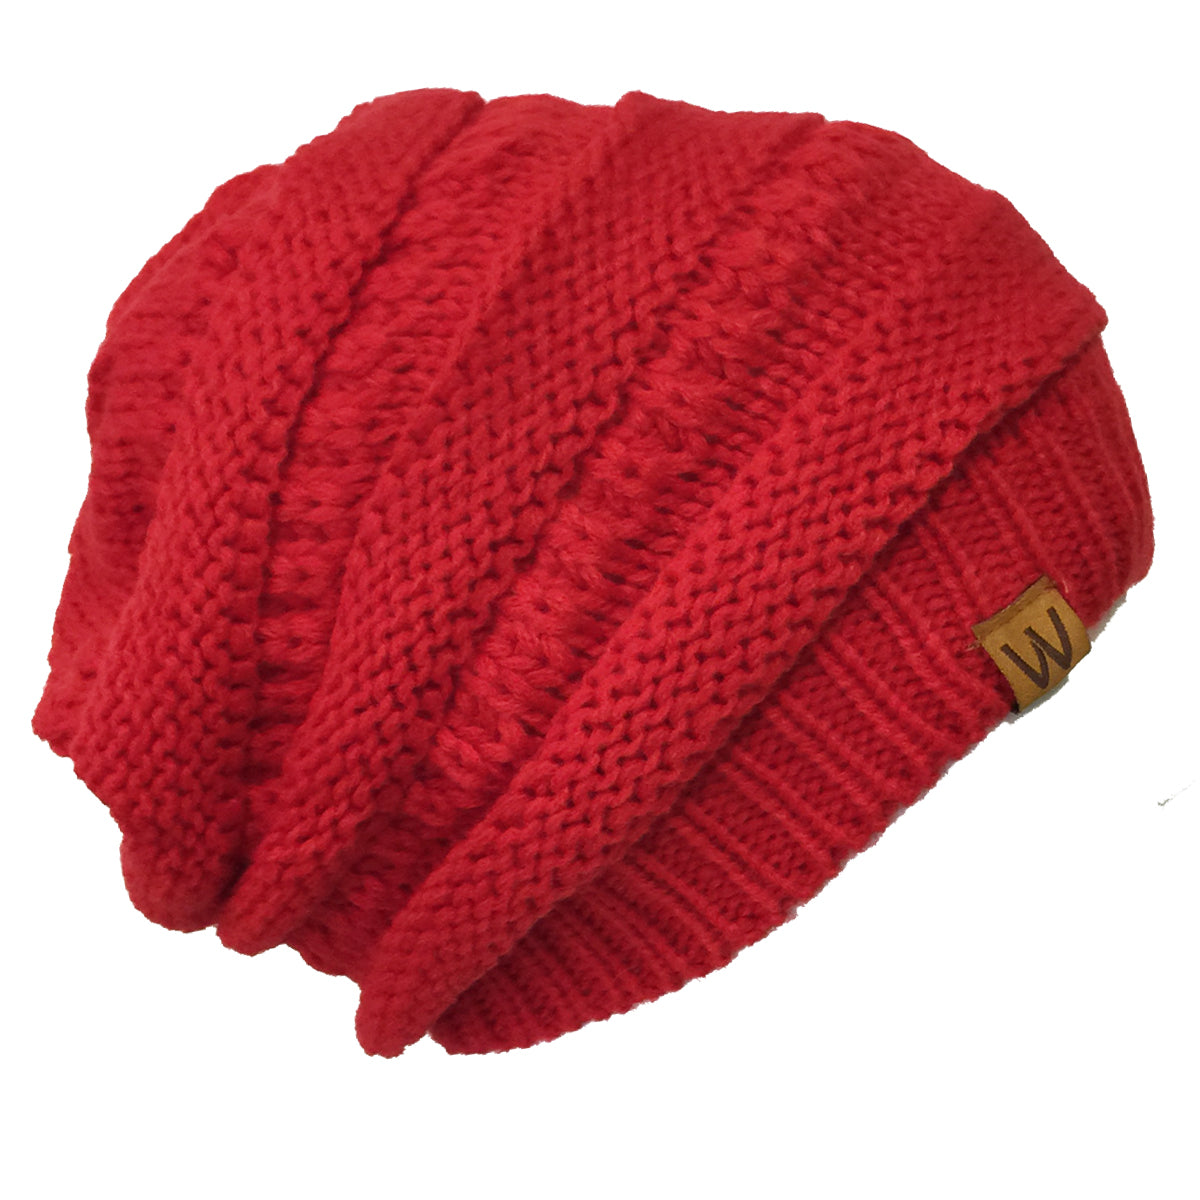 Wrapables Slouchy Winter Beanie Cap Hat